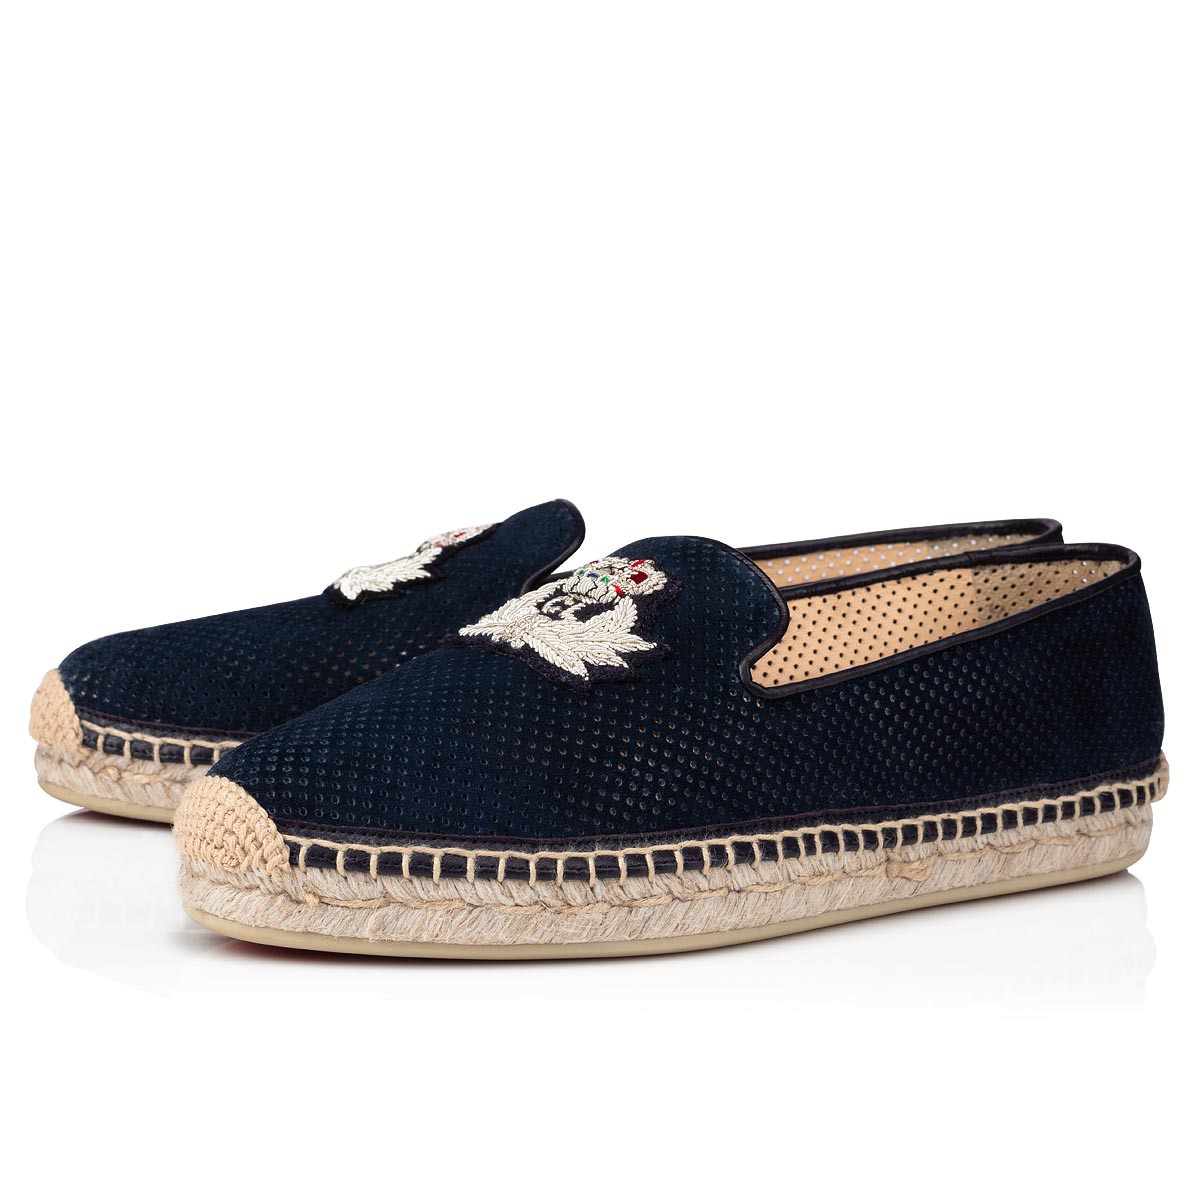 Shoes - Nanou Orlato Woman Flat - Christian Louboutin